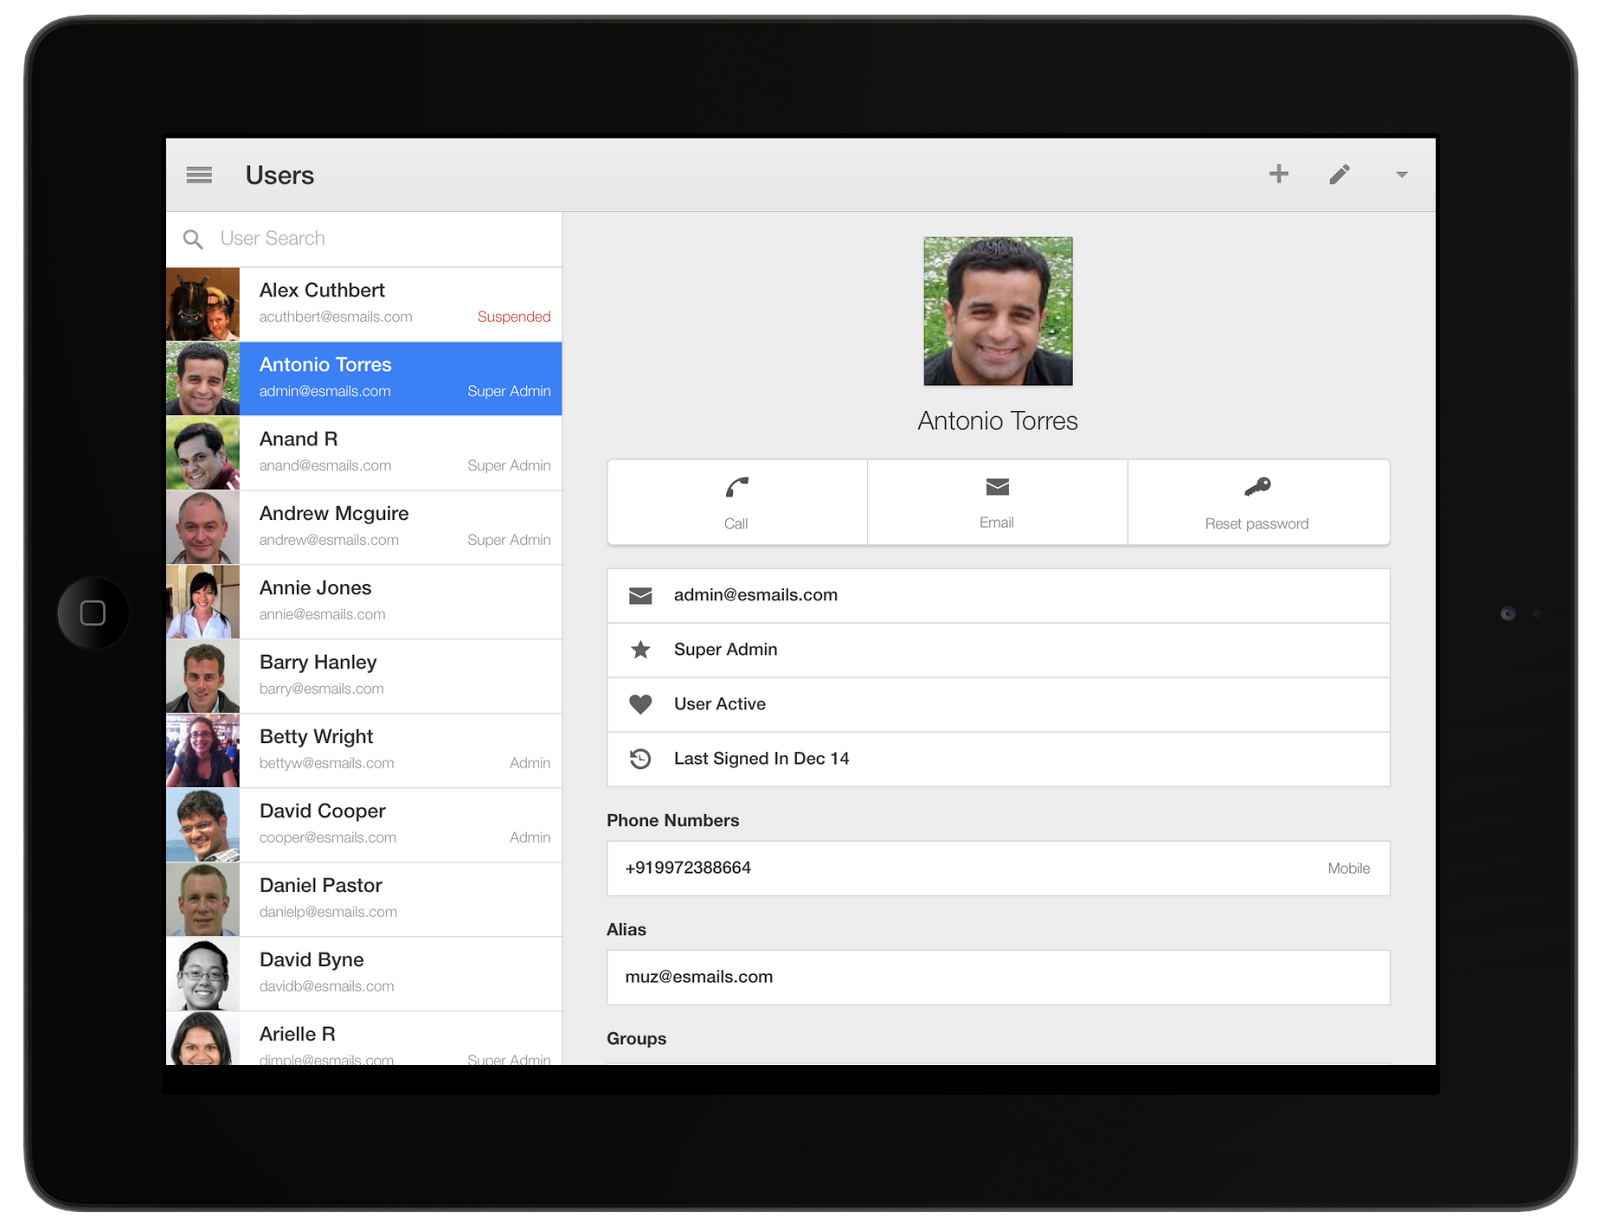 Official Google Cloud Blog: New Google Admin App for iOS